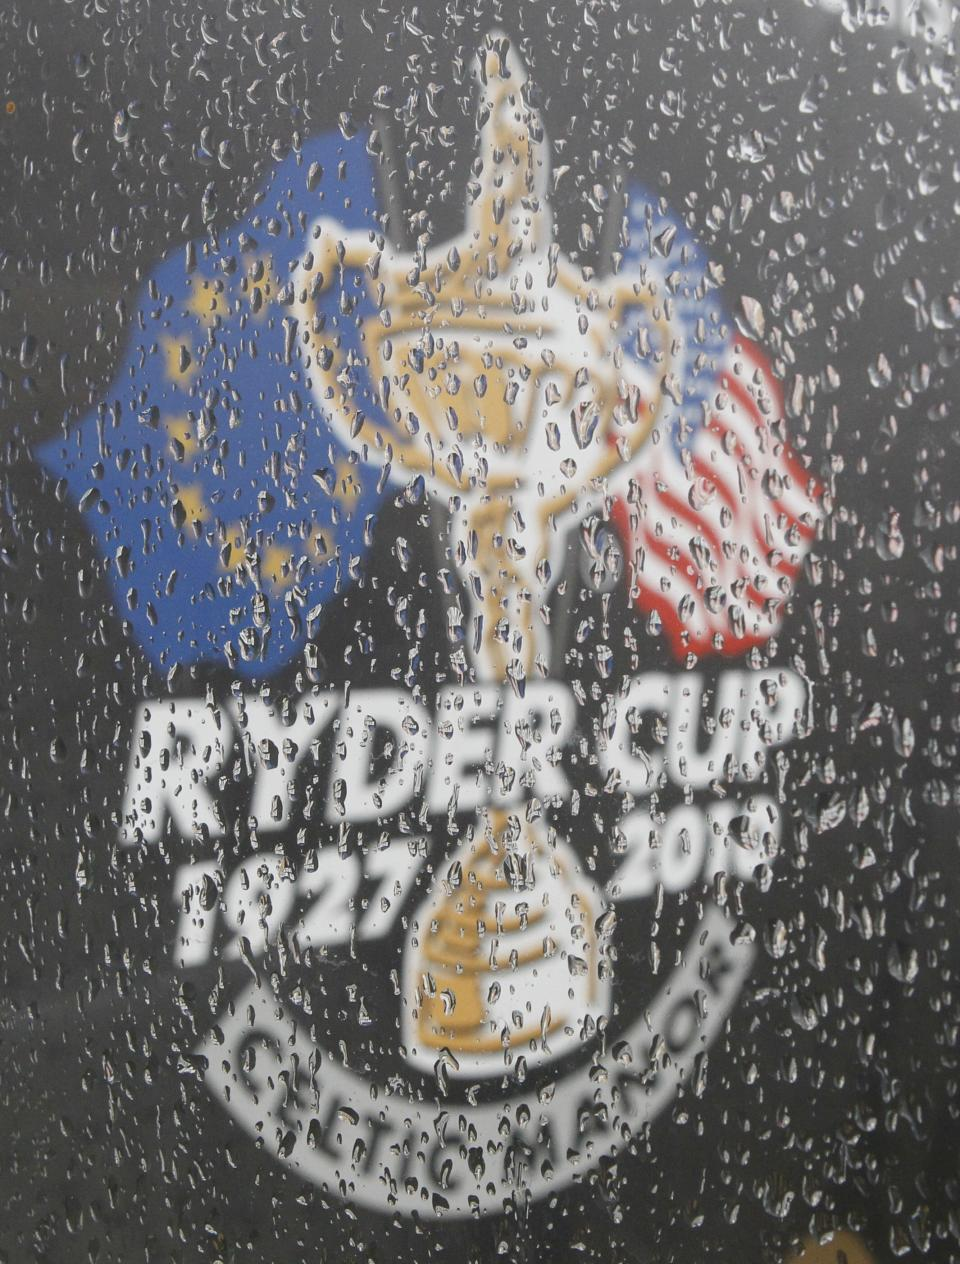 A Ryder Cup logo is seen through a window covered in raindrops during a heavy rainfall that suspended play at the 2010 Ryder Cup golf tournament at the Celtic Manor golf course in Newport, Wales, Friday, Oct.  1, 2010. (AP Photo/Peter Morrison)